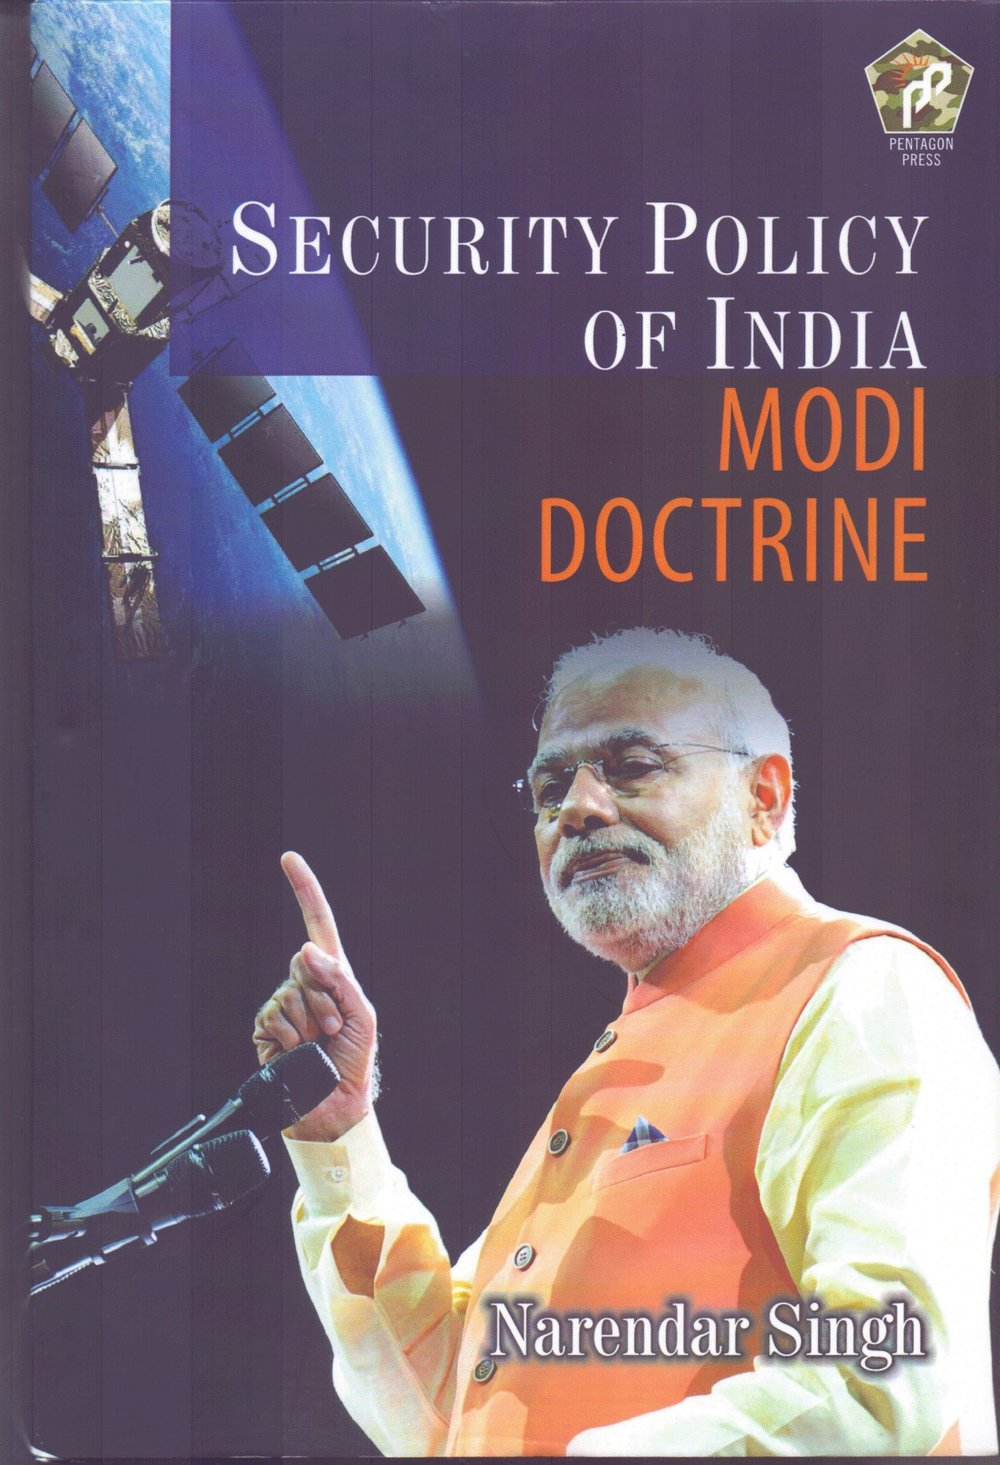 Review of Security Policy of India